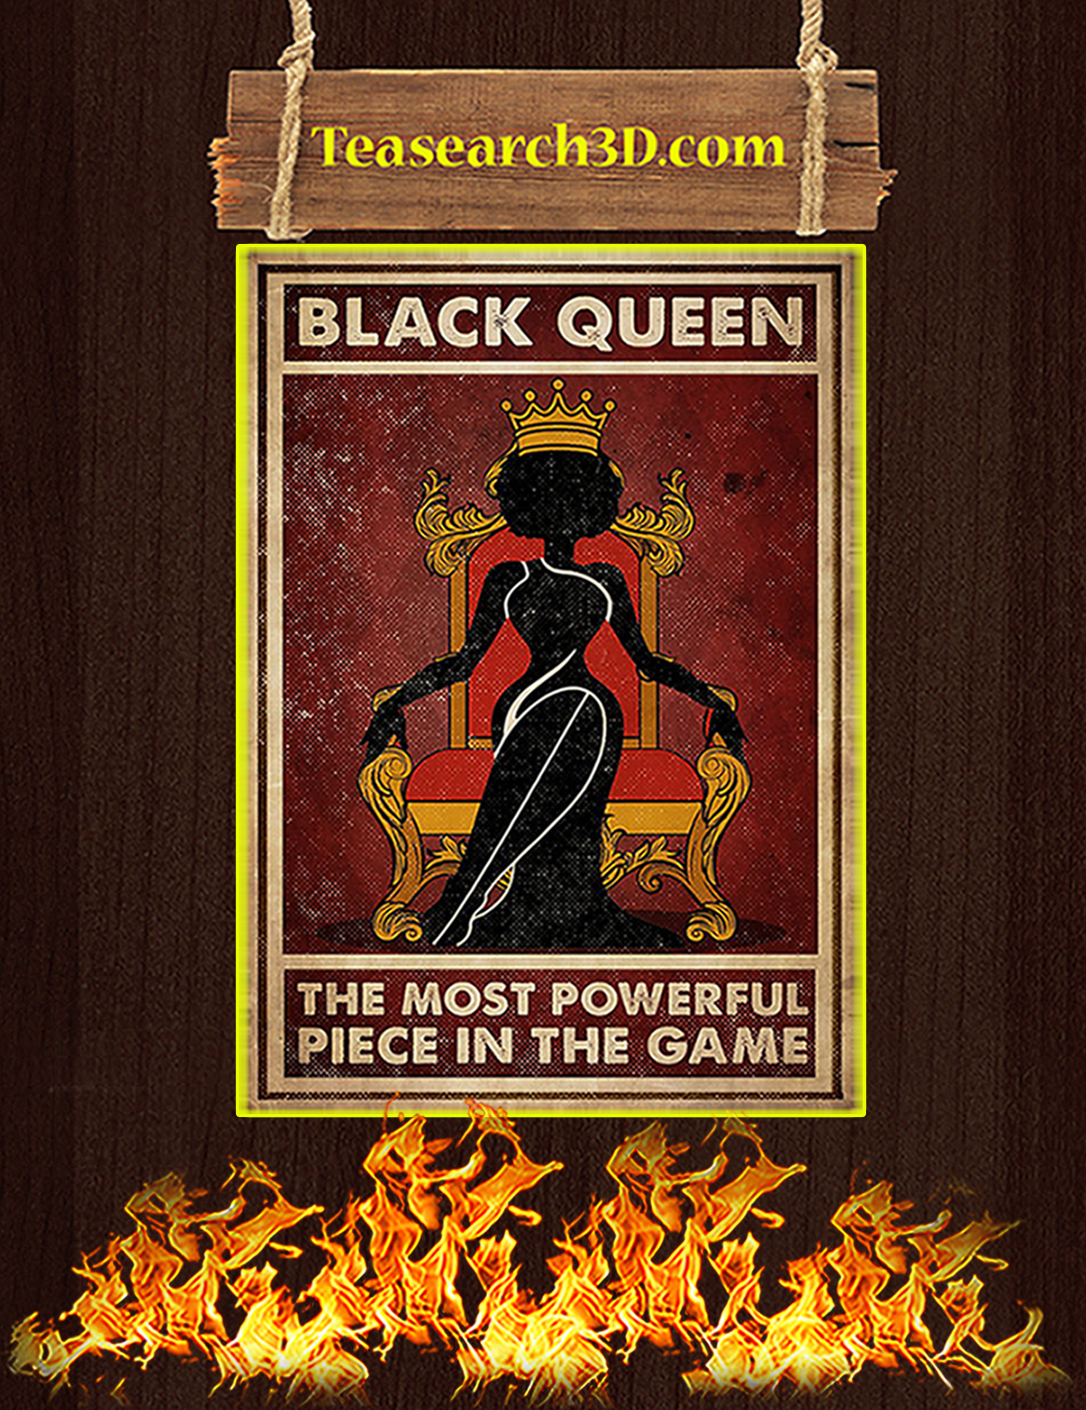 Black queen the most powerful piece in the game poster A2